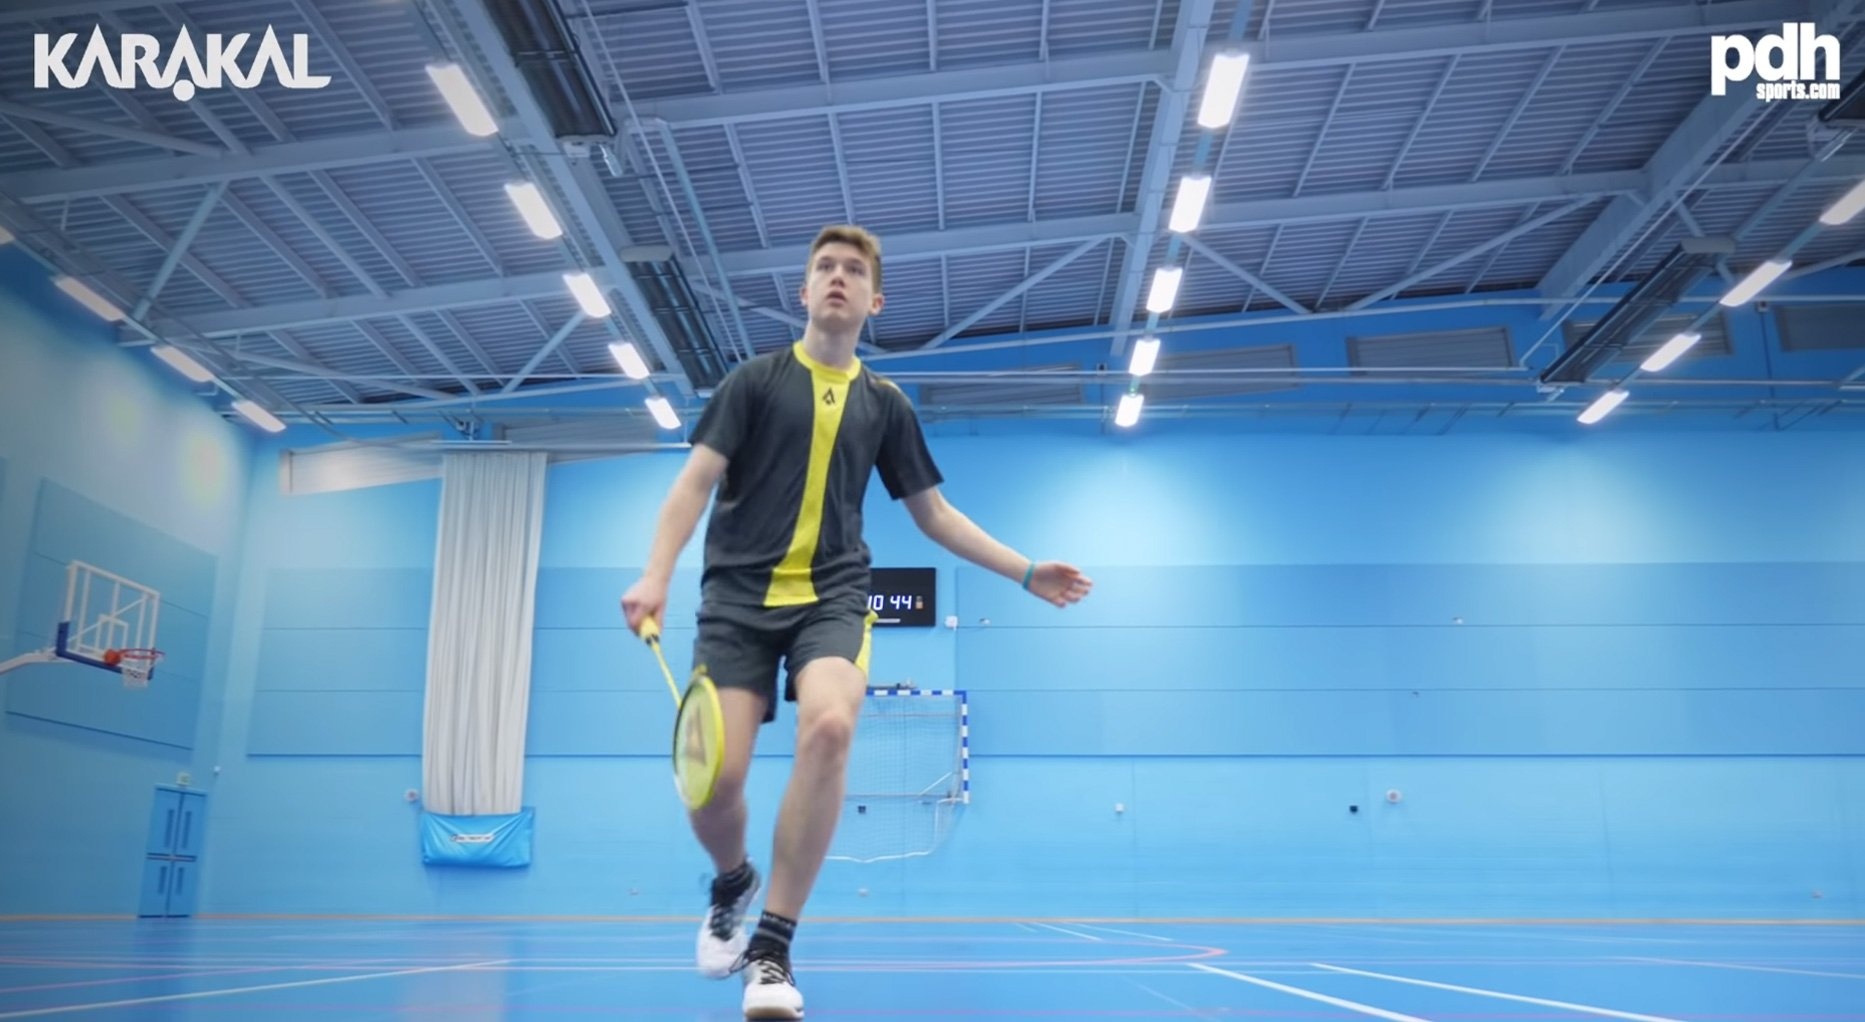 Part-One--PDHSPORTS.COM-meets-U19-English-National-Champion-and-Karakal-Badminton-player-Ethan-Rose